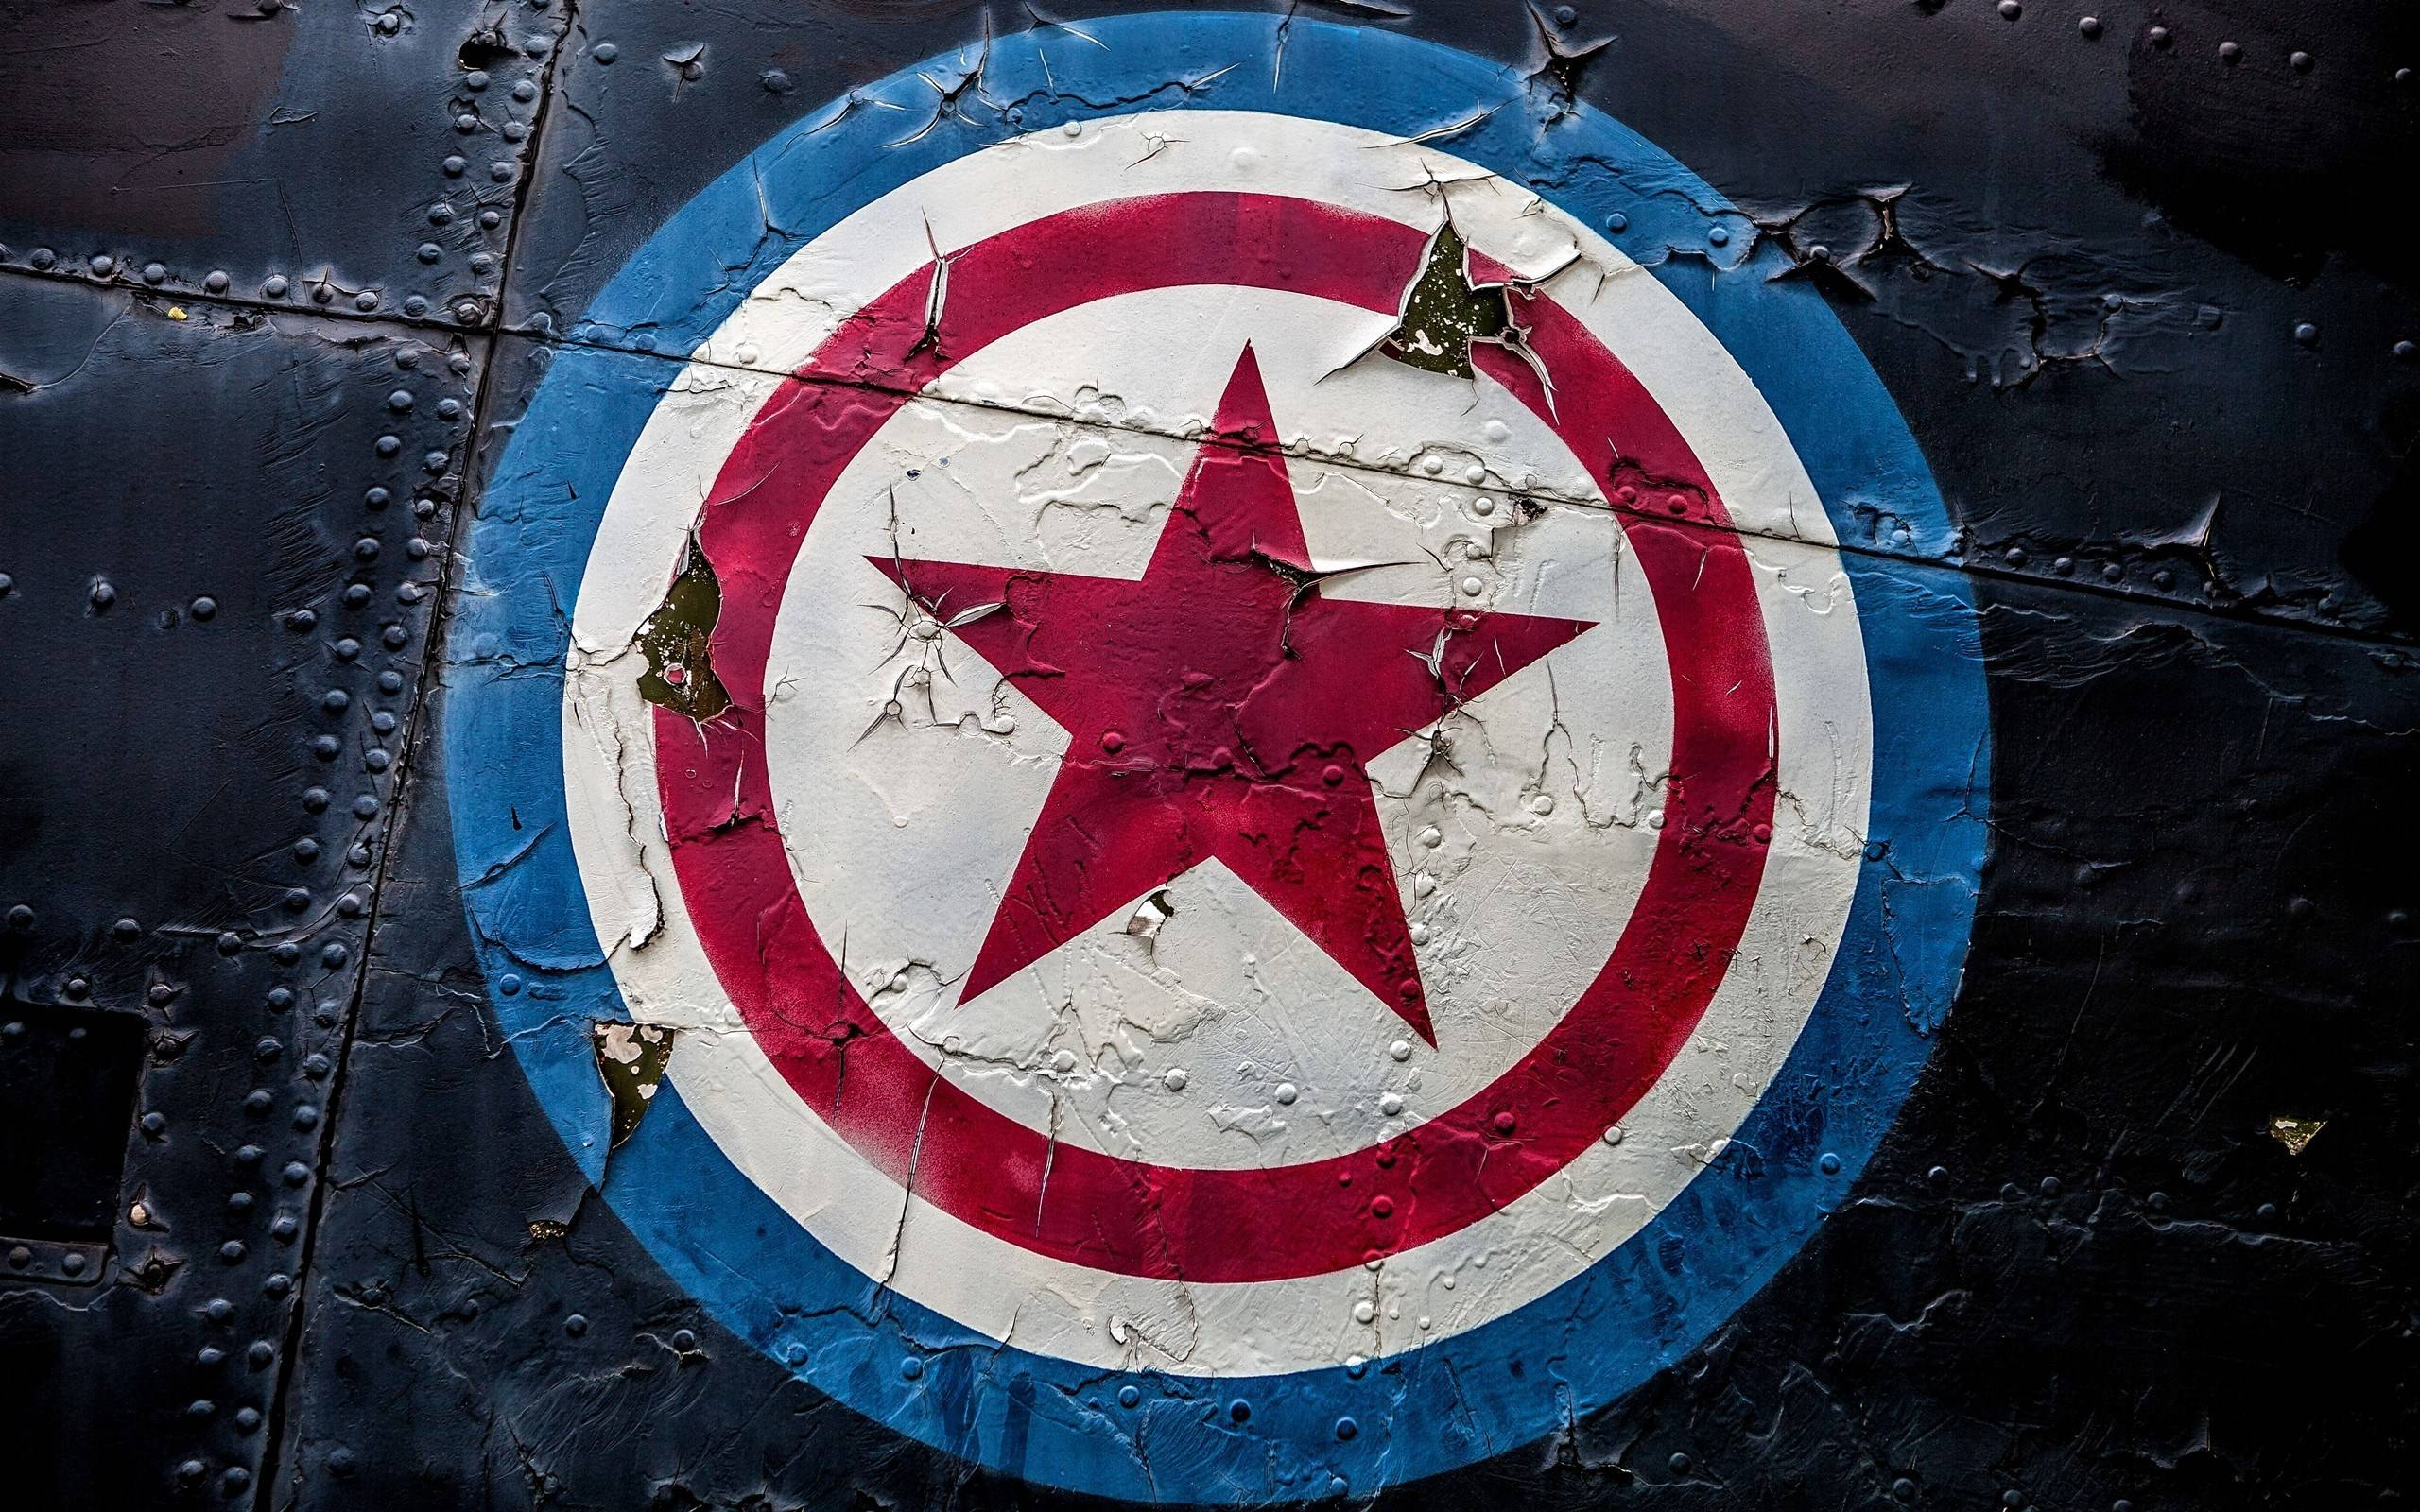 1920x1200 Captain America 1080p Resolution Hd 4k Wallpapers